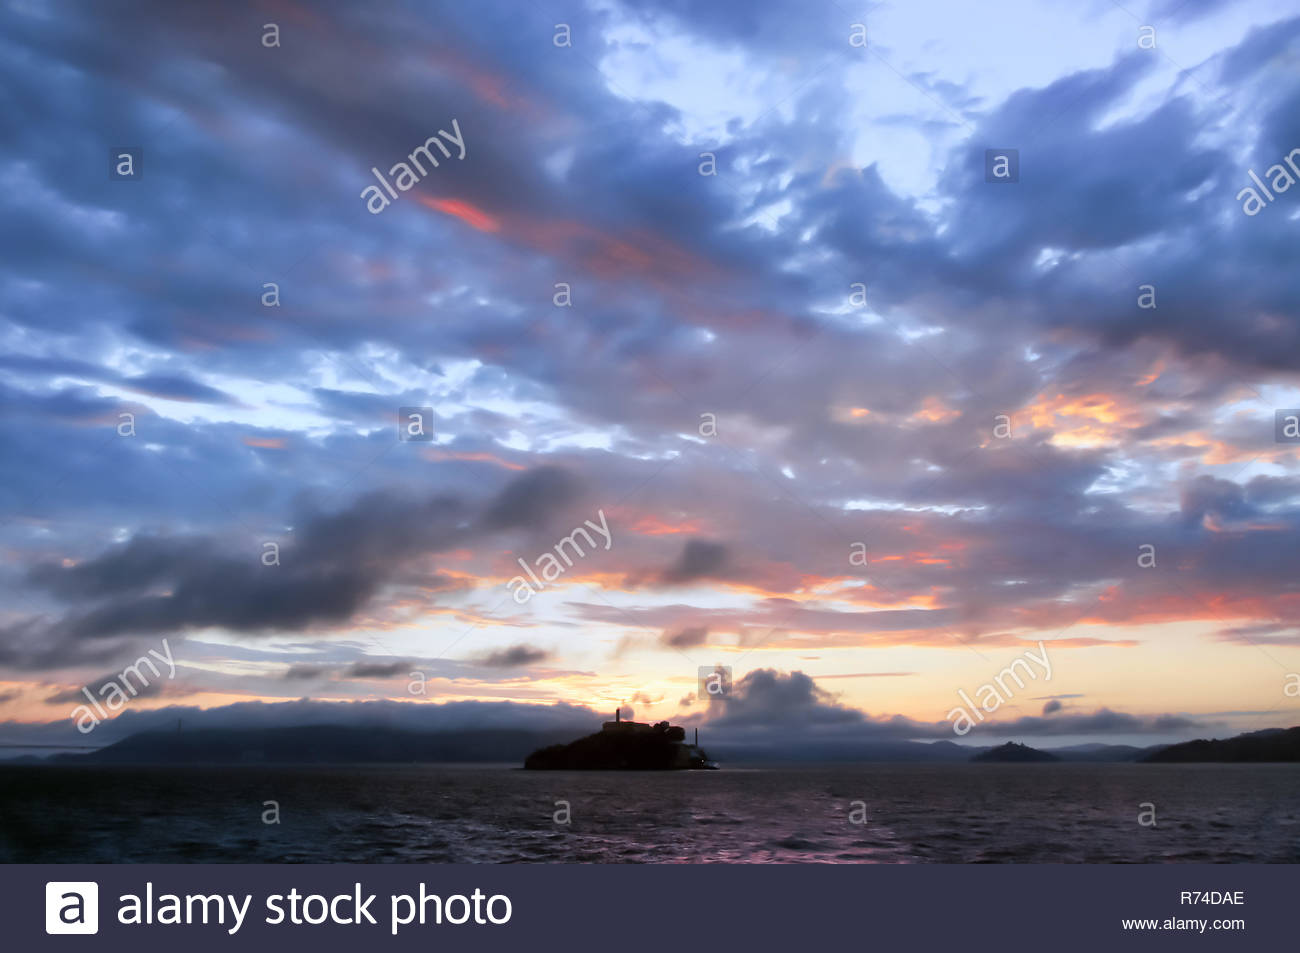 Alcatraz Island Sunset as seen from a Cruise Boat - Stock Image